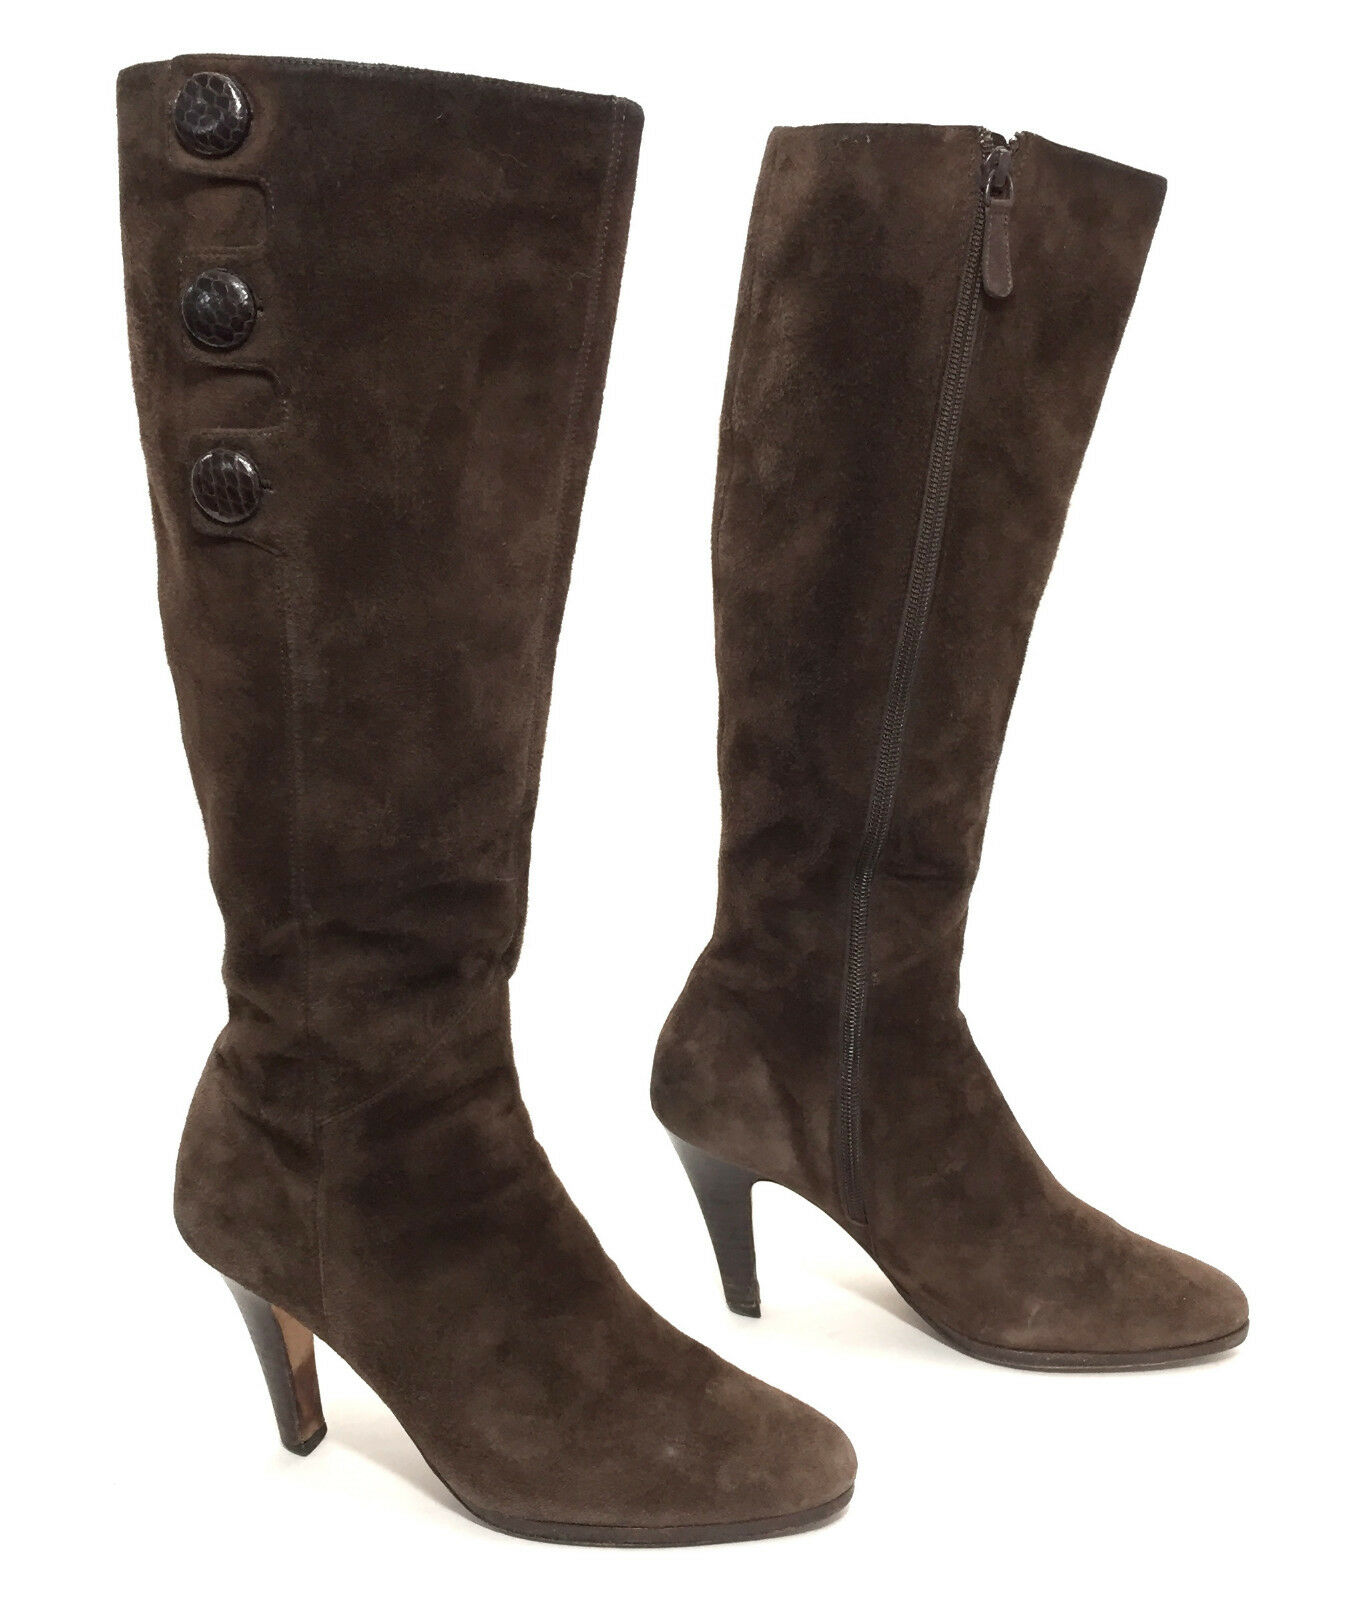 Women's Cole Haan Dark Brown Suede Knee High Boots w  Leather Buttons Size 8.5 B